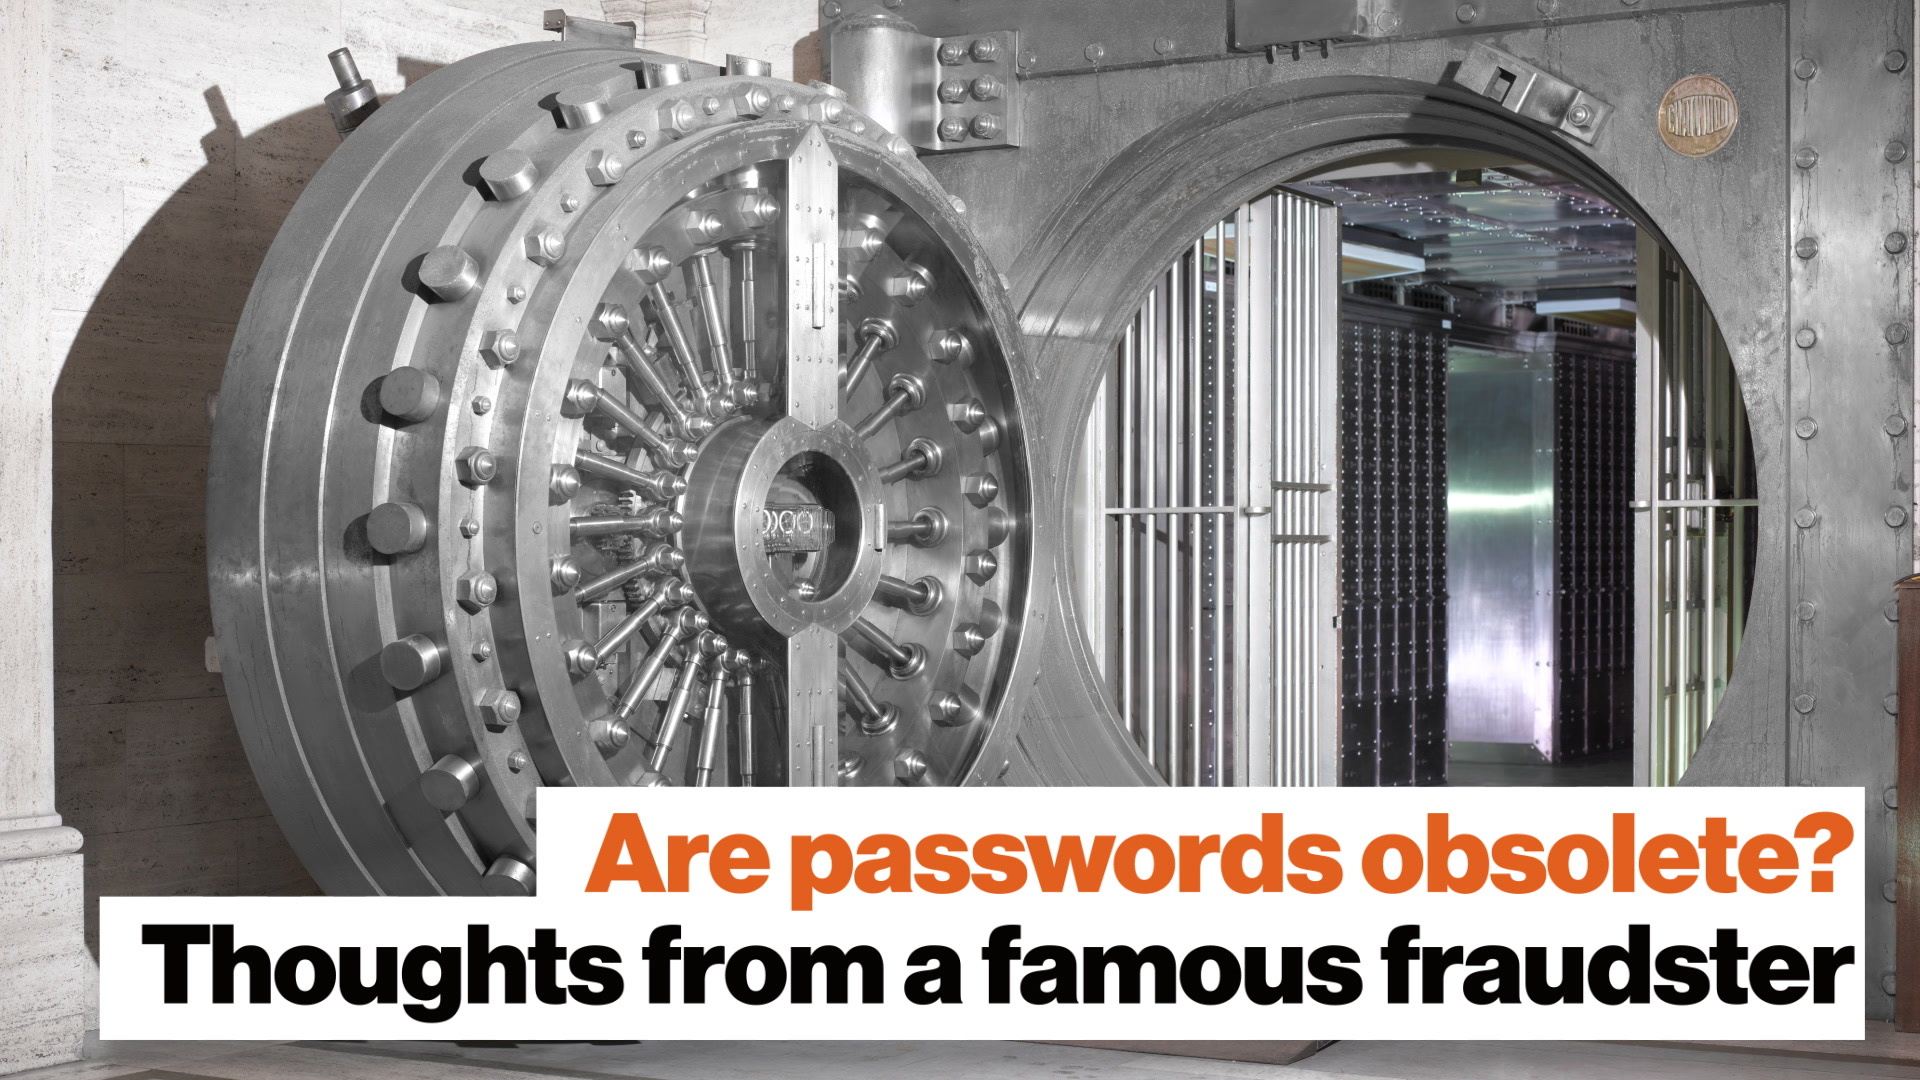 Are passwords obsolete? Thoughts from a famous fraudster.